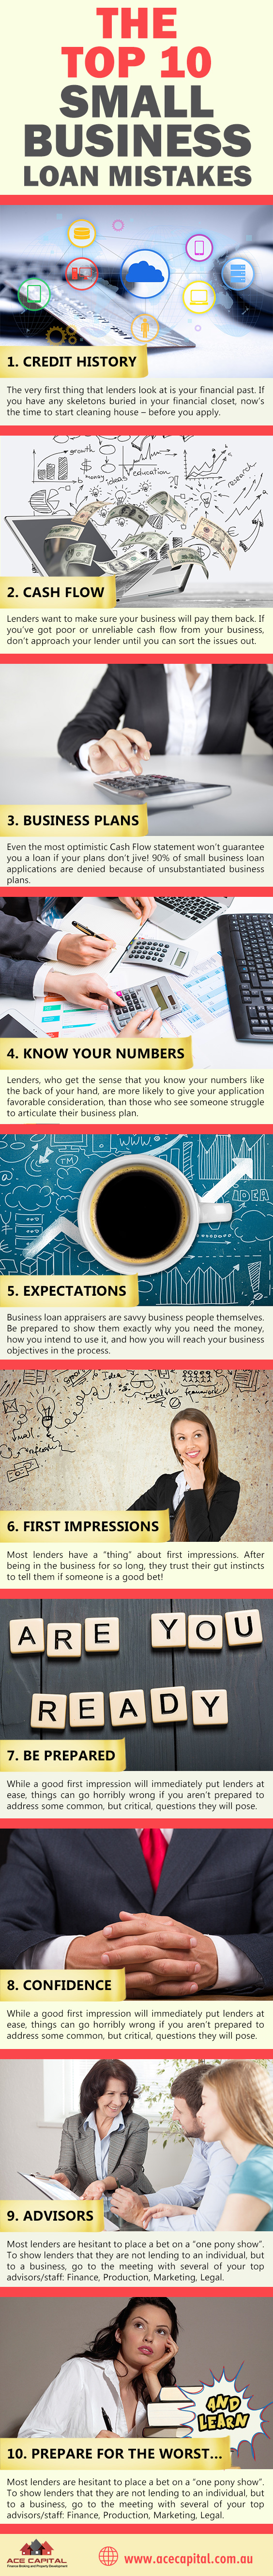 The Top 10 Small Business Loan Mistakes